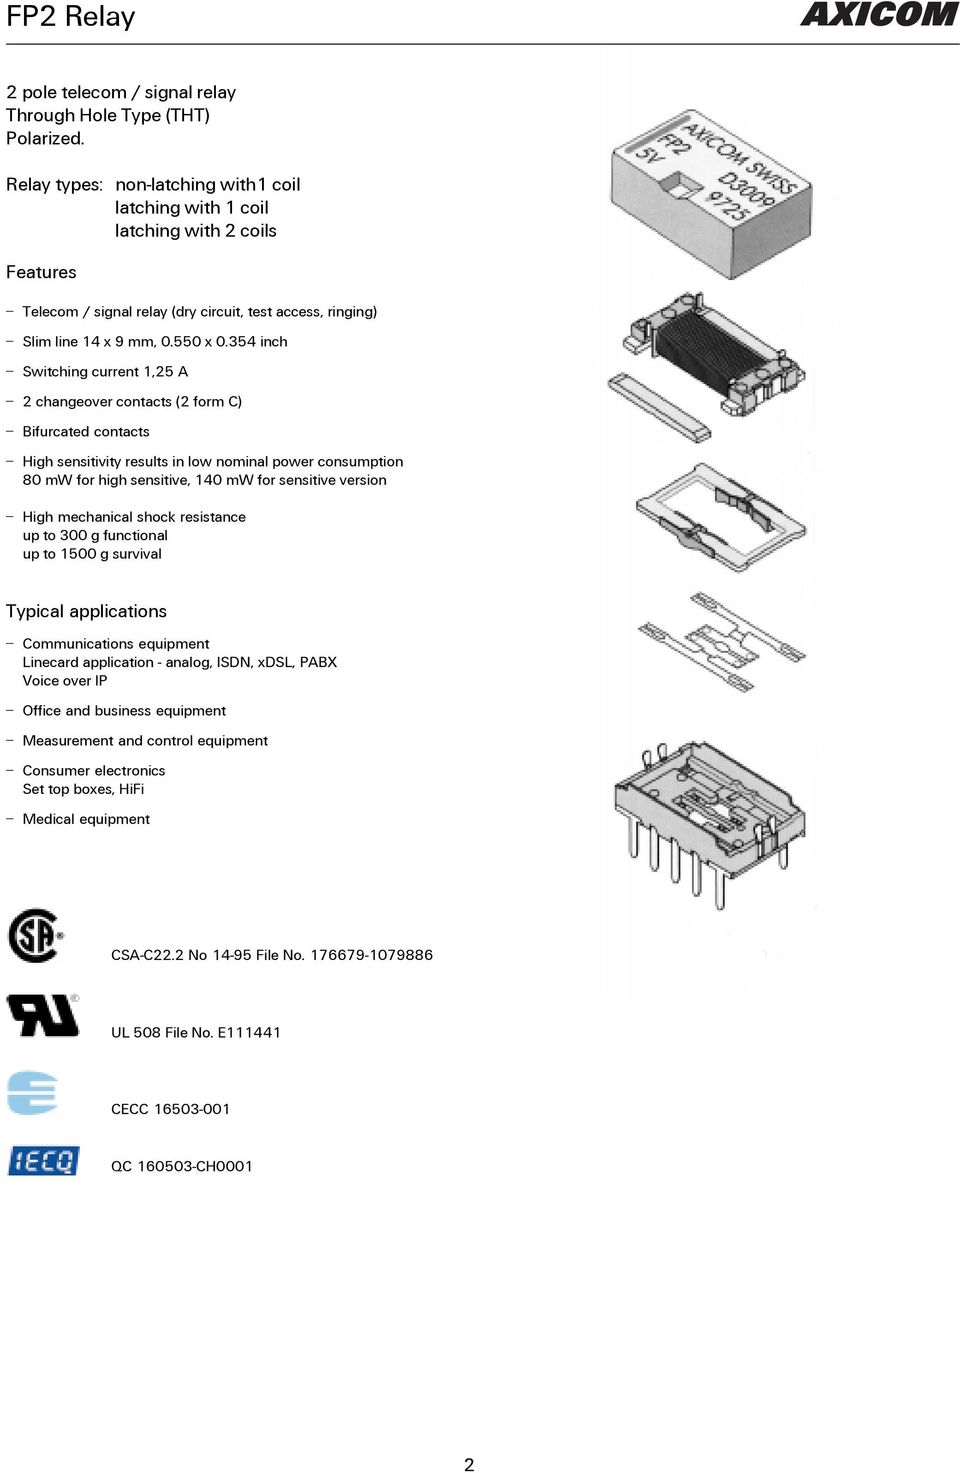 Fp2 Relay The Best Relaytion Pdf Switching Current Of 354 Inch 125 A 2 Changeover Contacts Form C